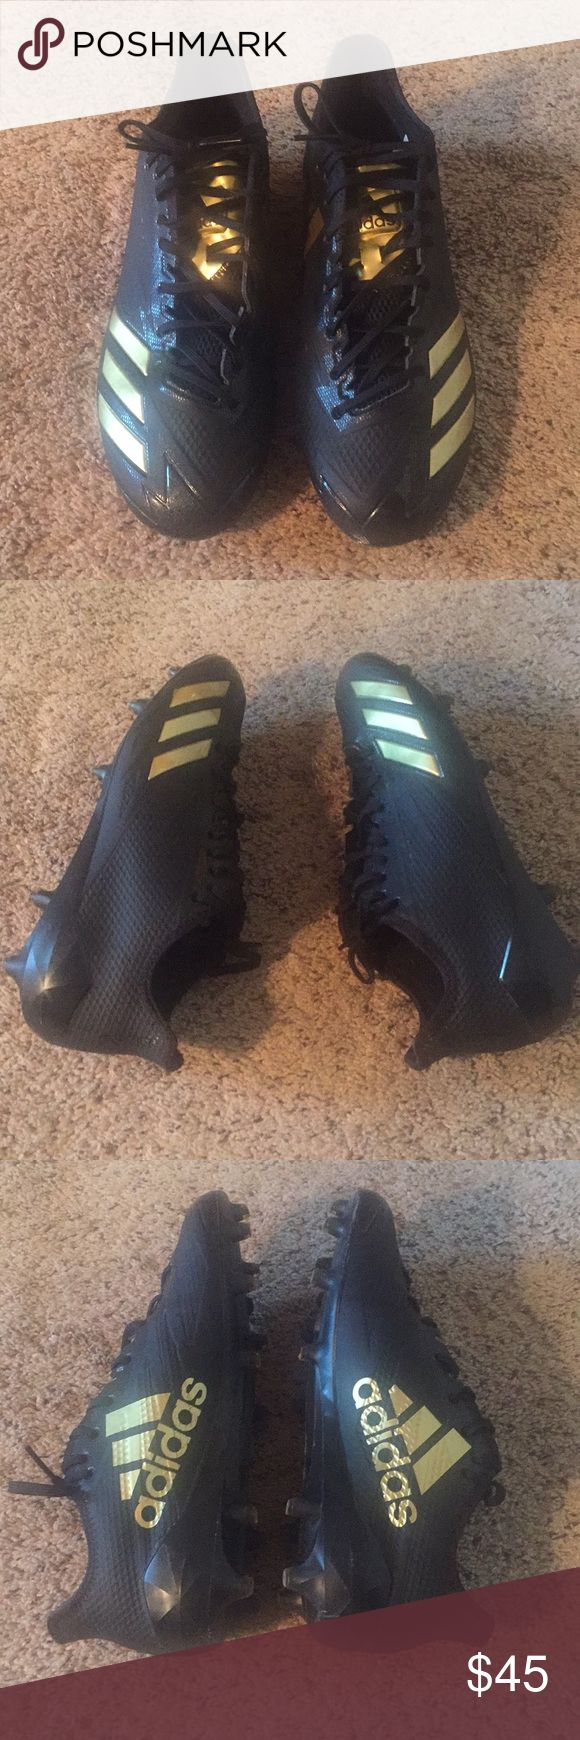 Adidas football cleats Used, very good condition only wore 1 season. adidas Shoes Athletic Shoes